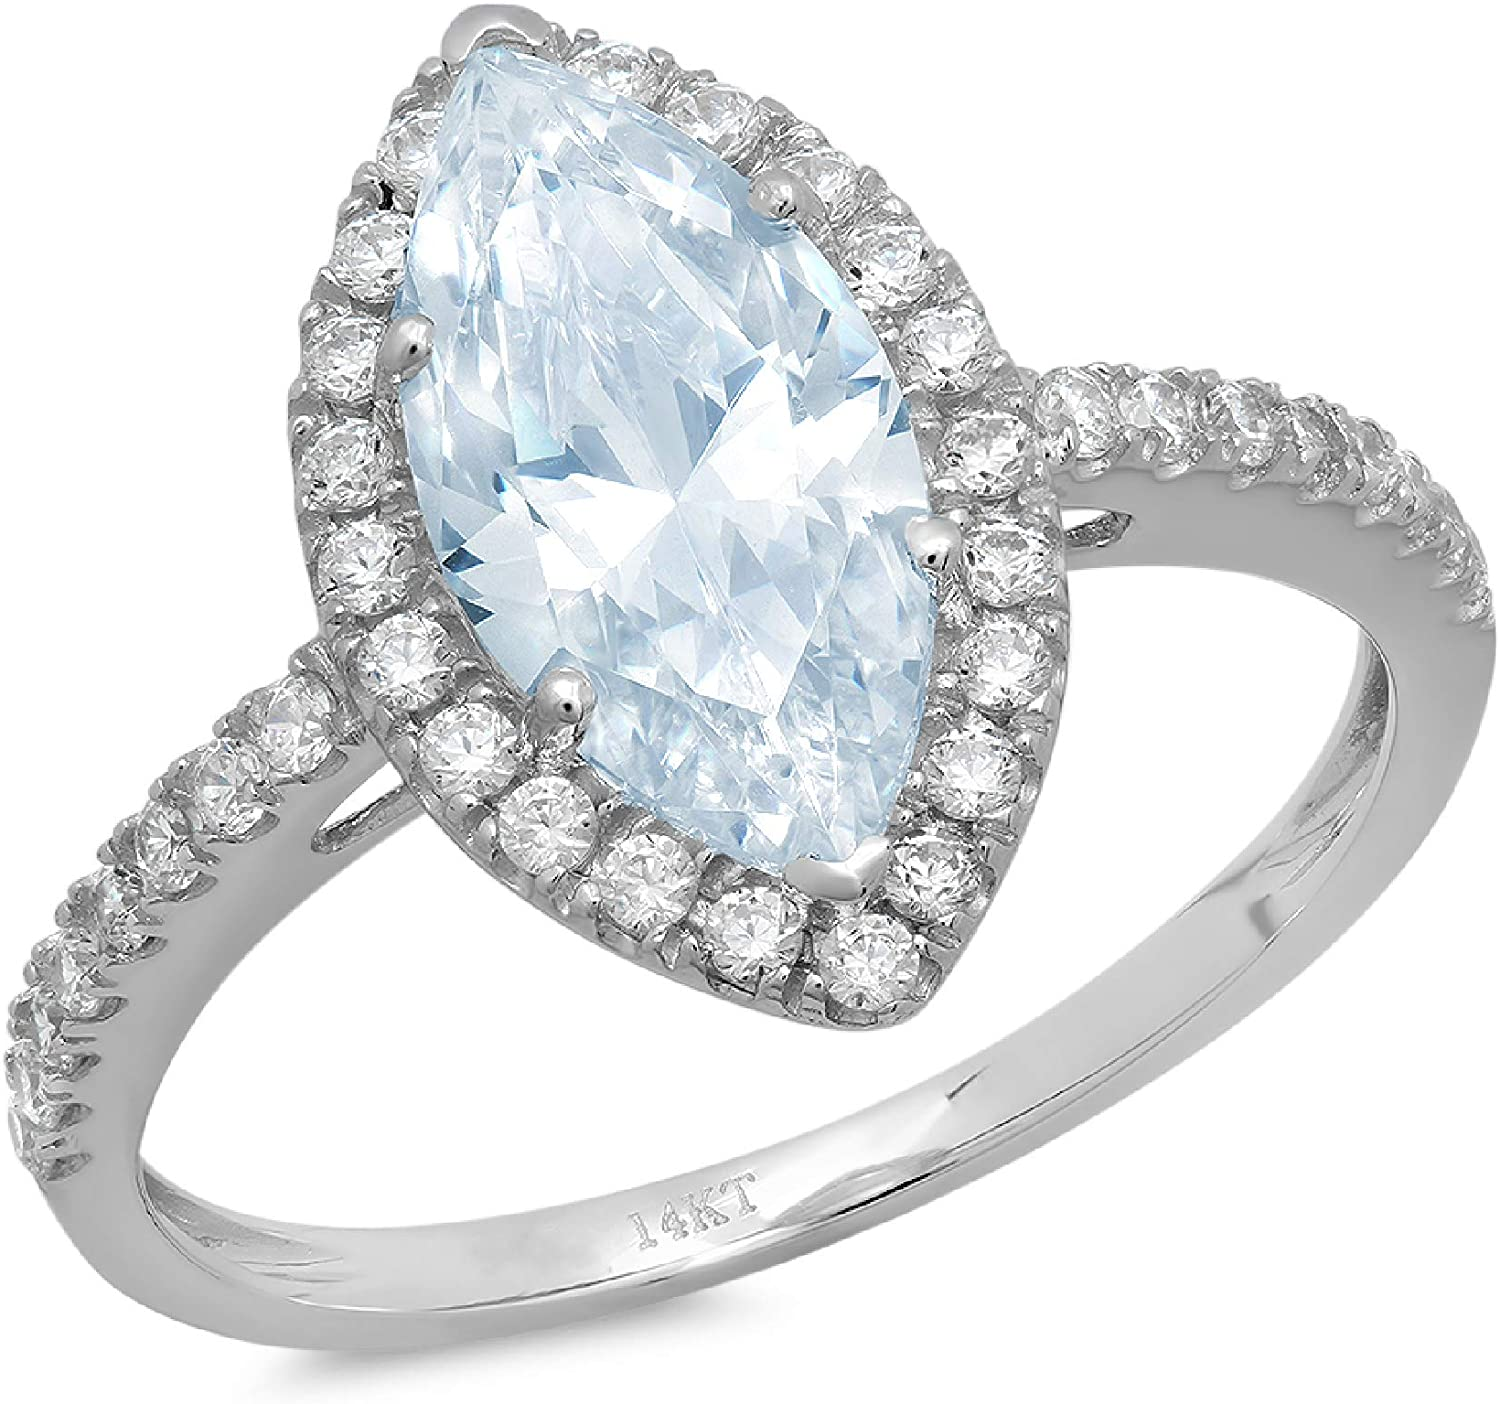 Clara Pucci 2.48 Brilliant Marquise Cut Our shop most popular Solitaire Max 70% OFF Accent St Halo